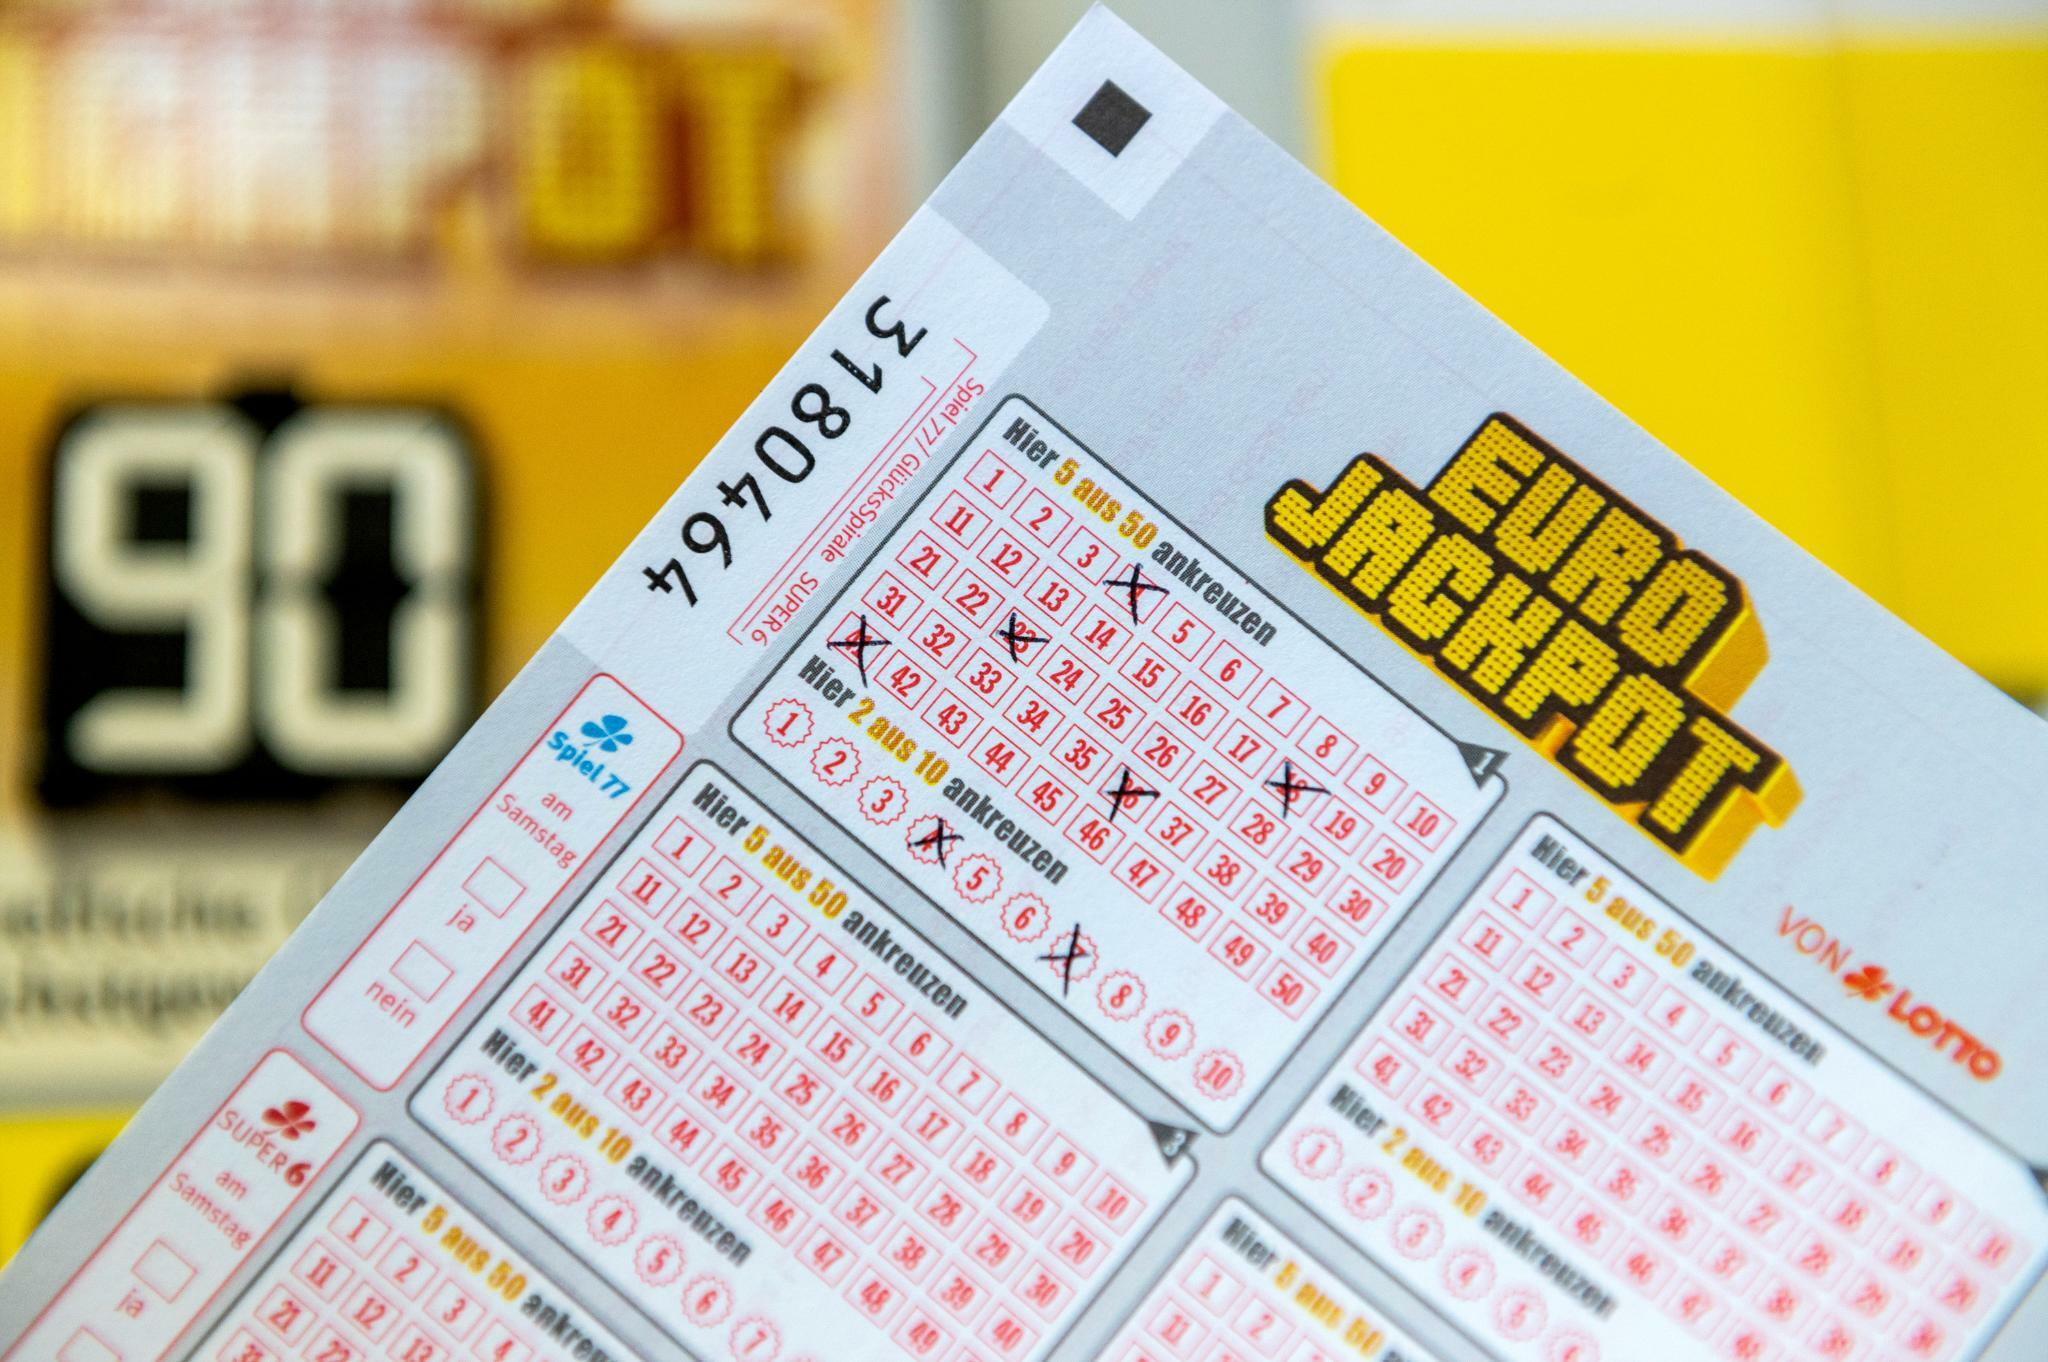 Eurojackpot - official Page of the European Lottery